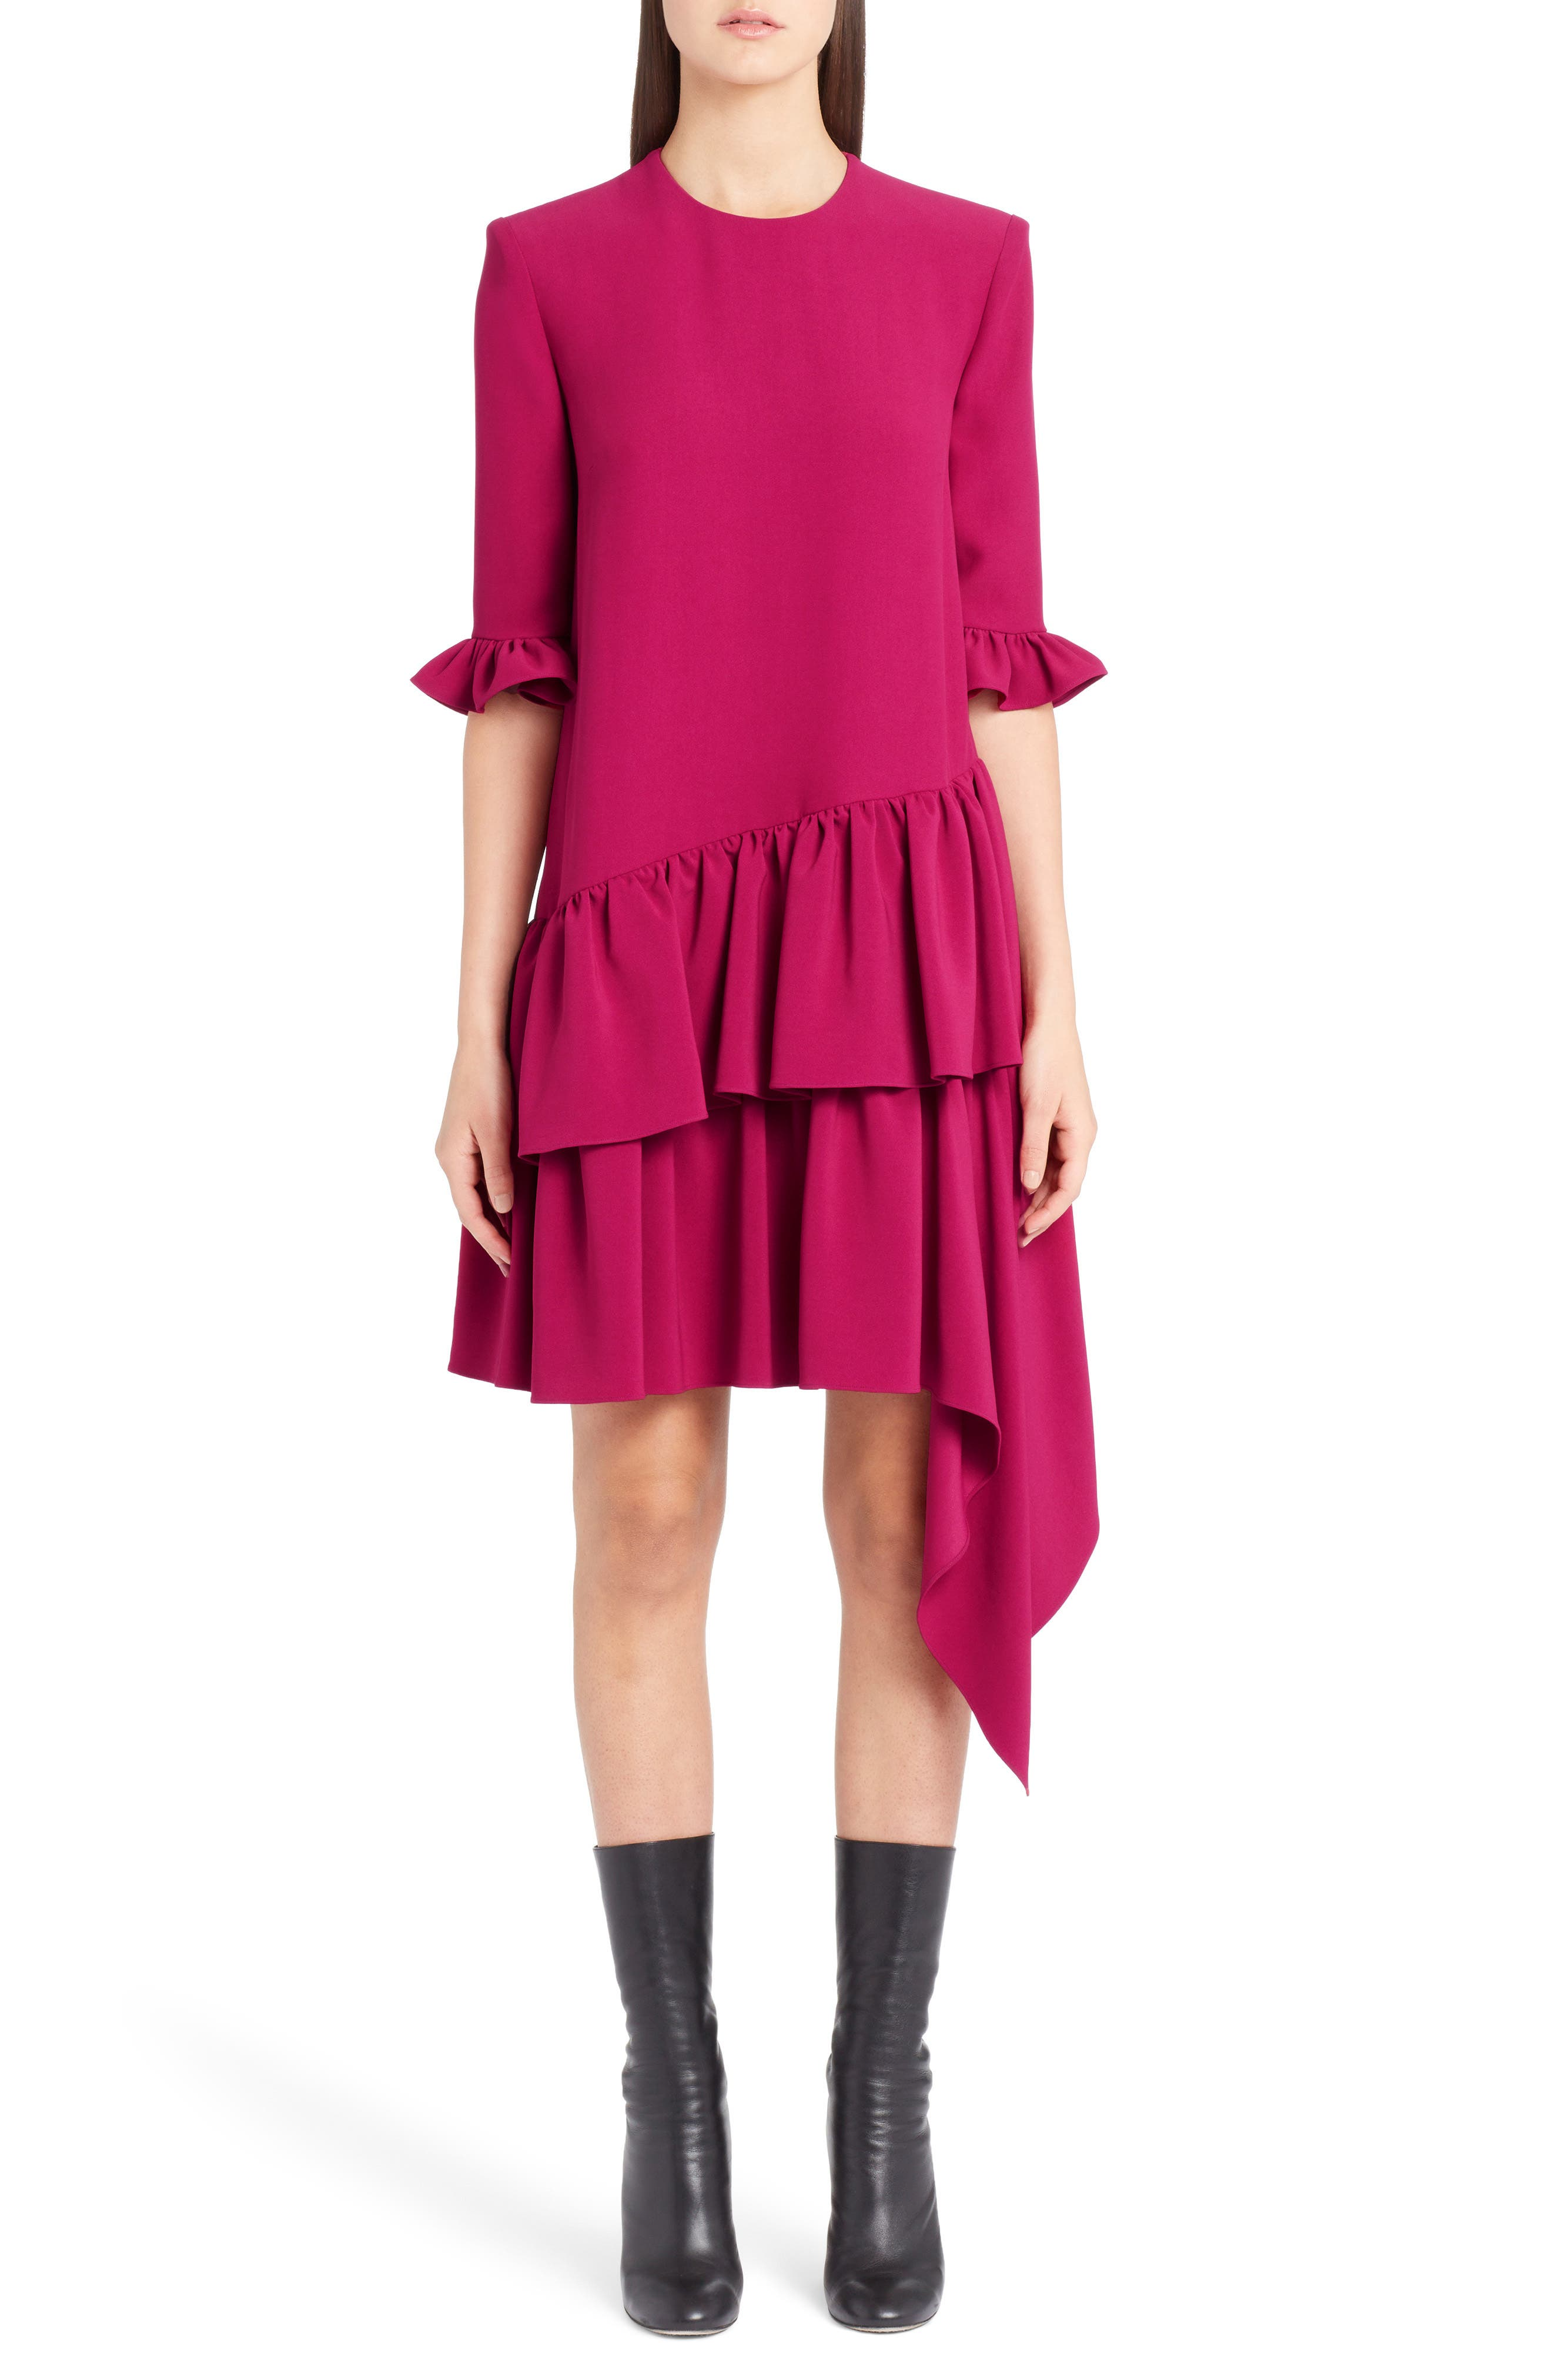 Alexander Mcqueen Asymmetrical Ruffle Hem Crepe Dress, US / 40 IT - Pink